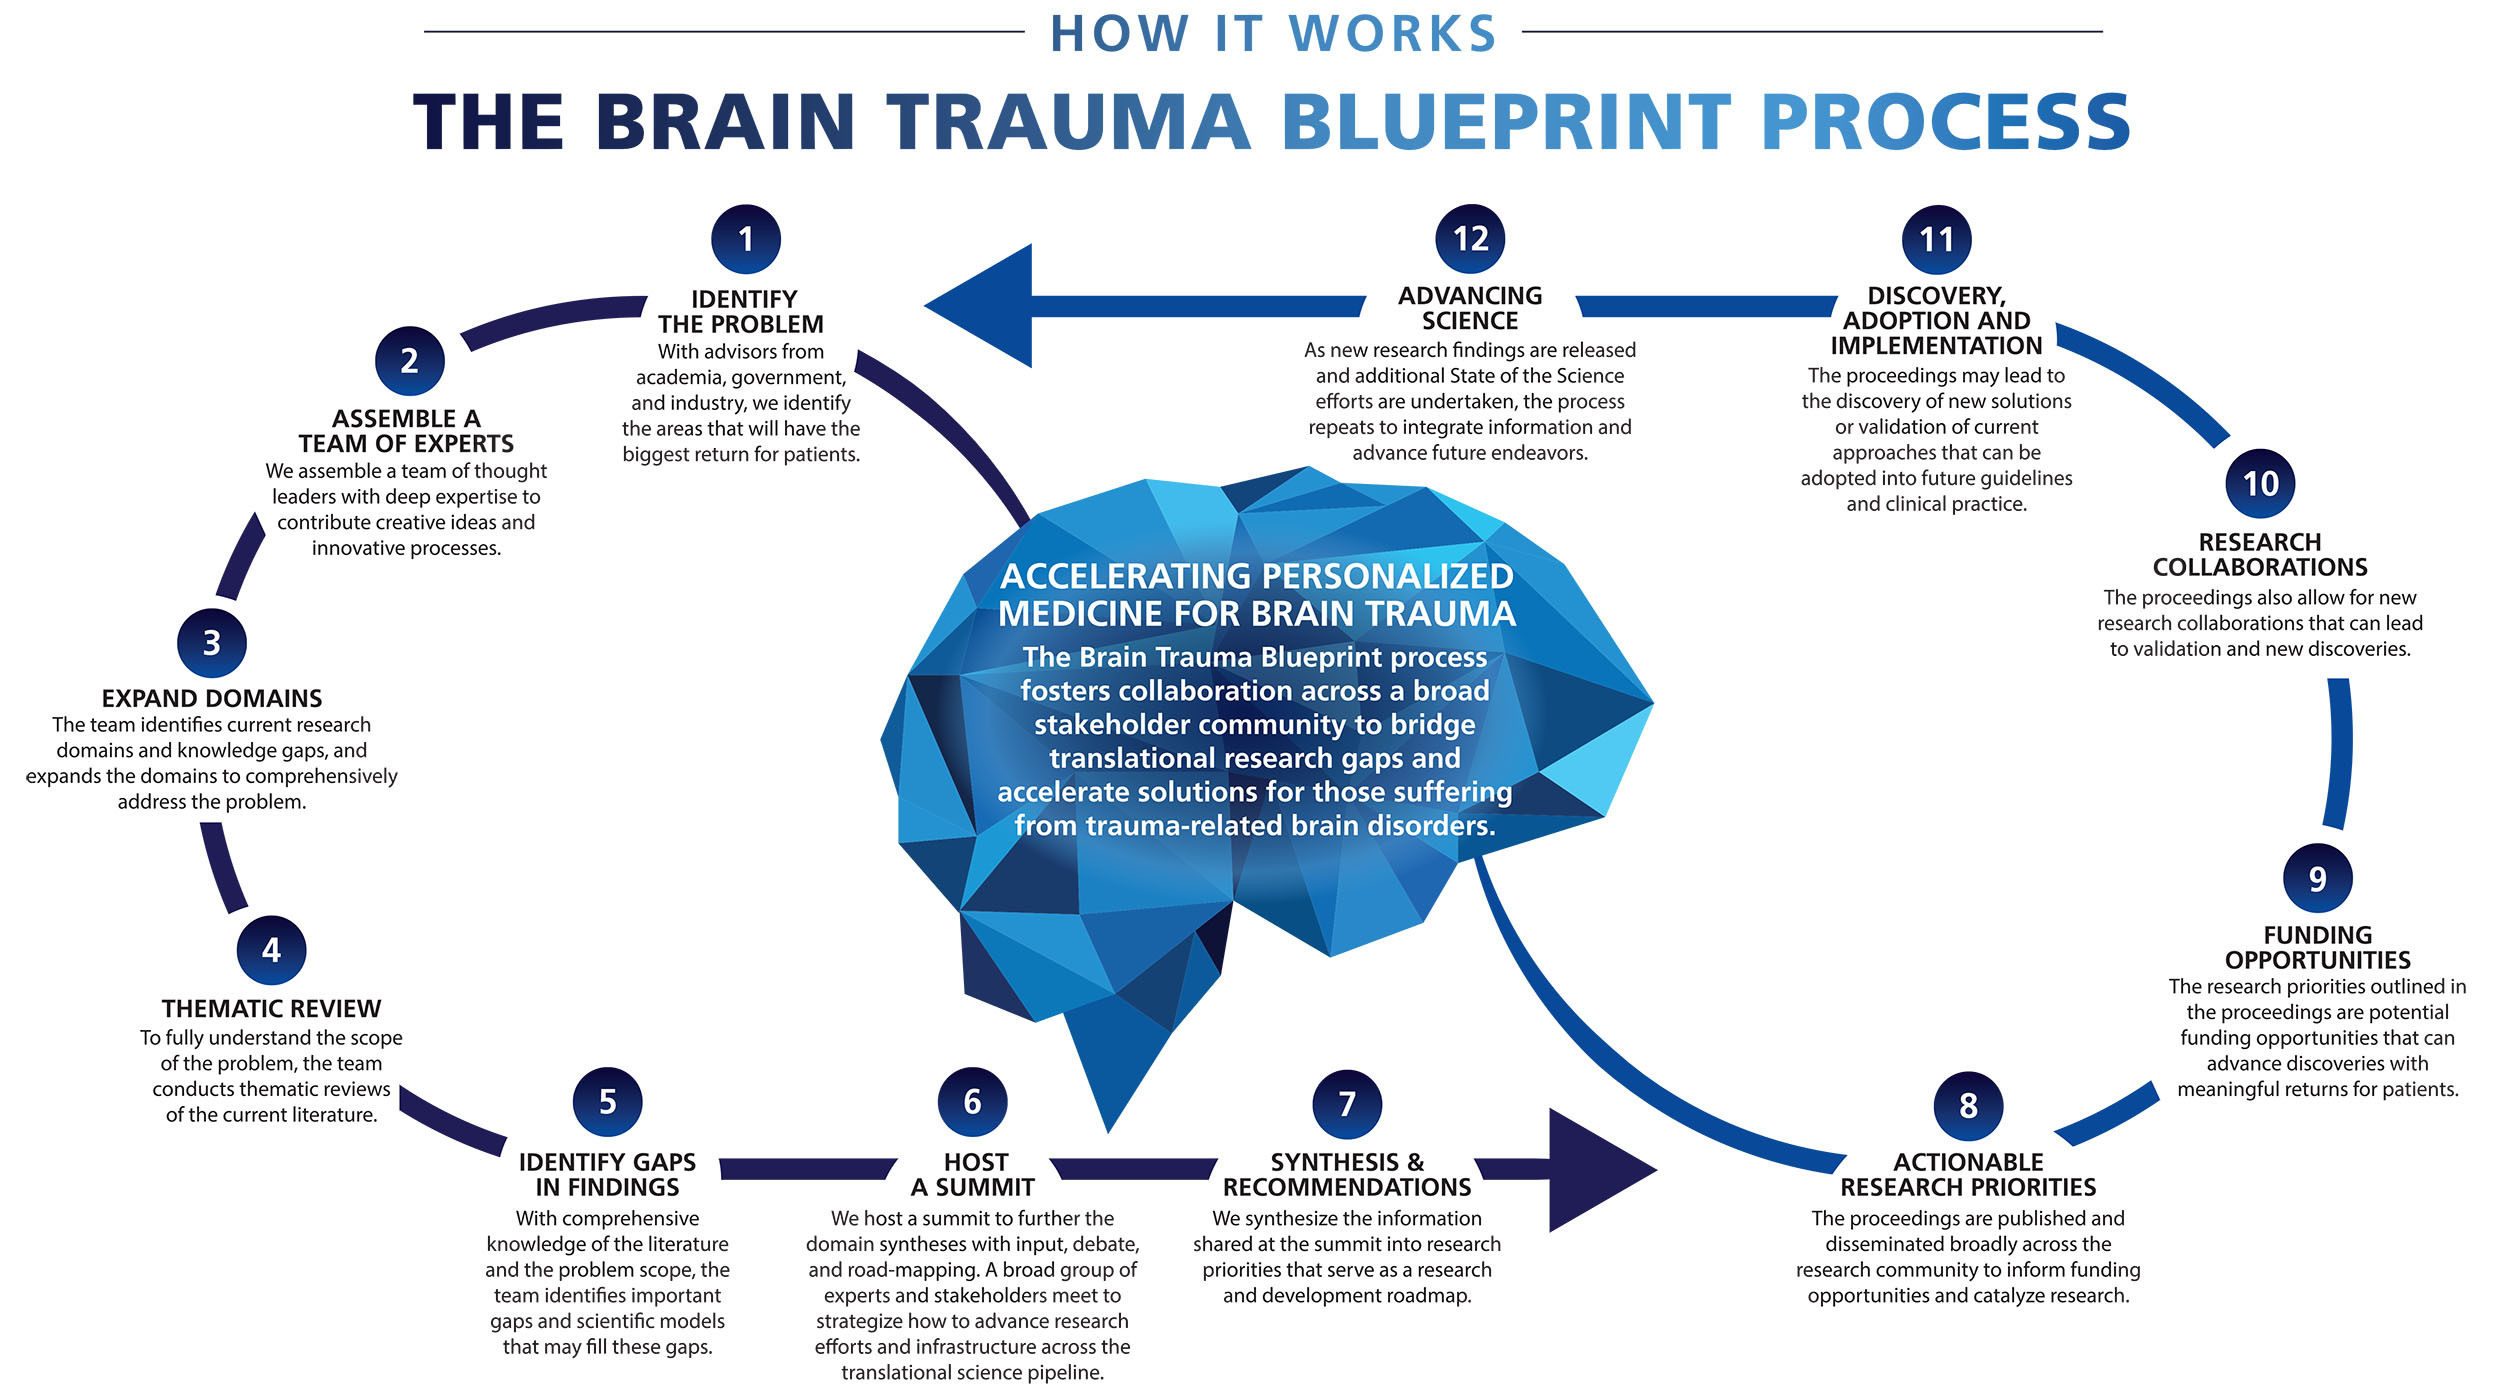 The Brain Trauma Blueprint Process